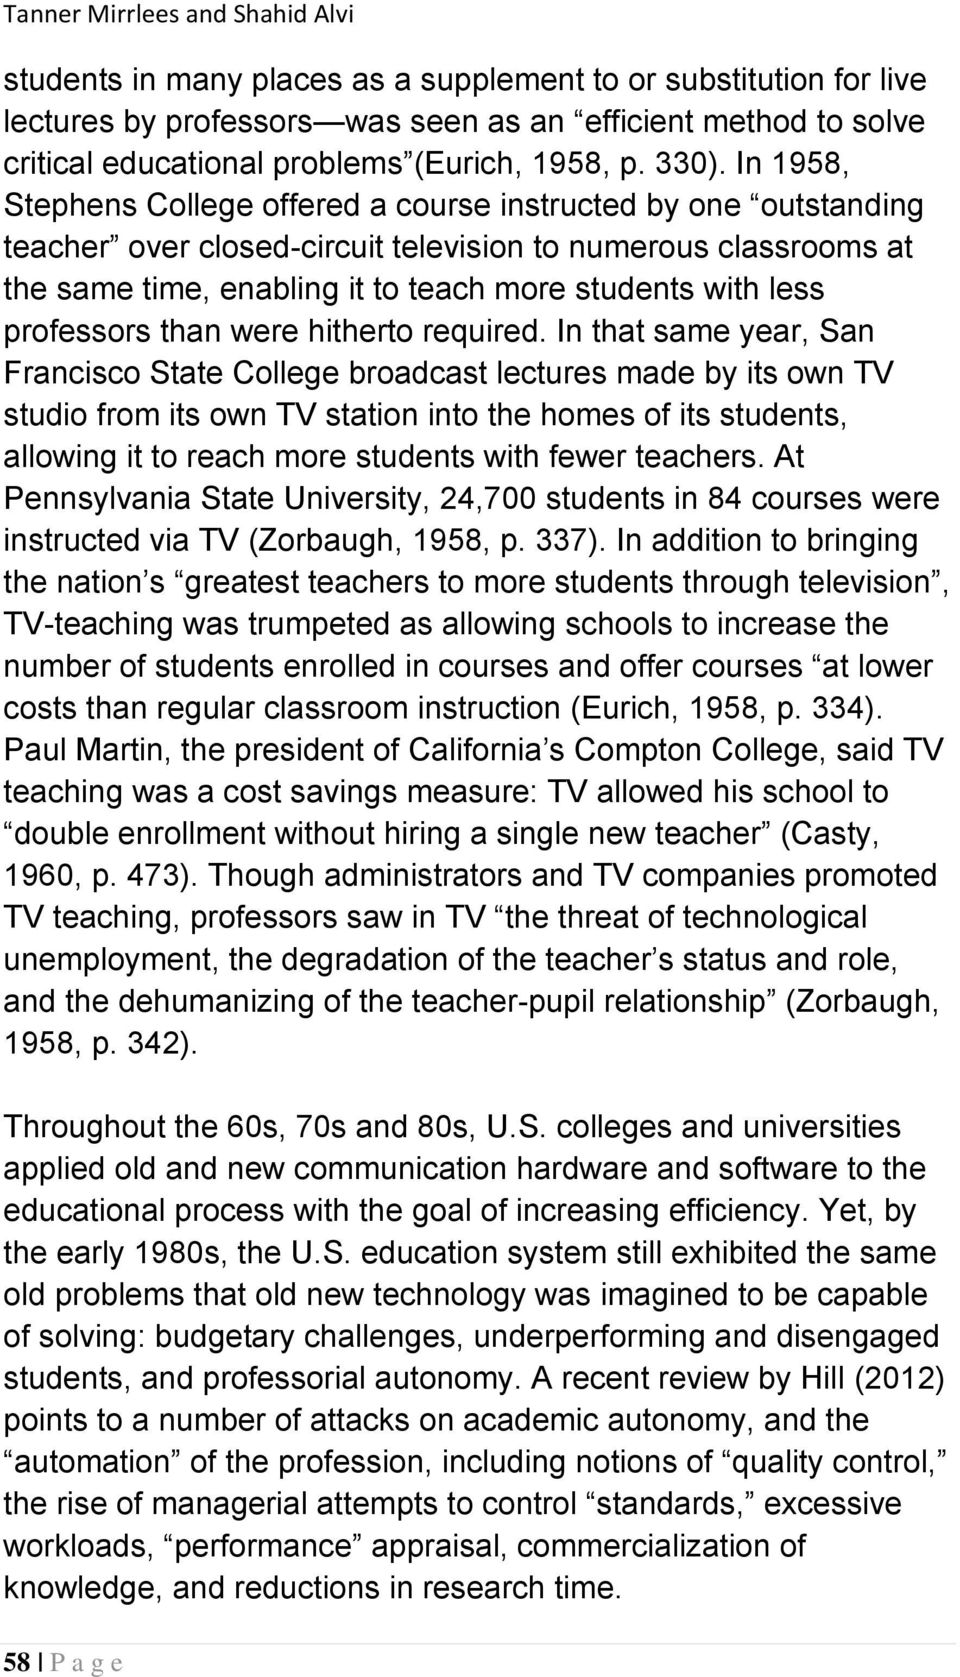 In 1958, Stephens College offered a course instructed by one outstanding teacher over closed-circuit television to numerous classrooms at the same time, enabling it to teach more students with less